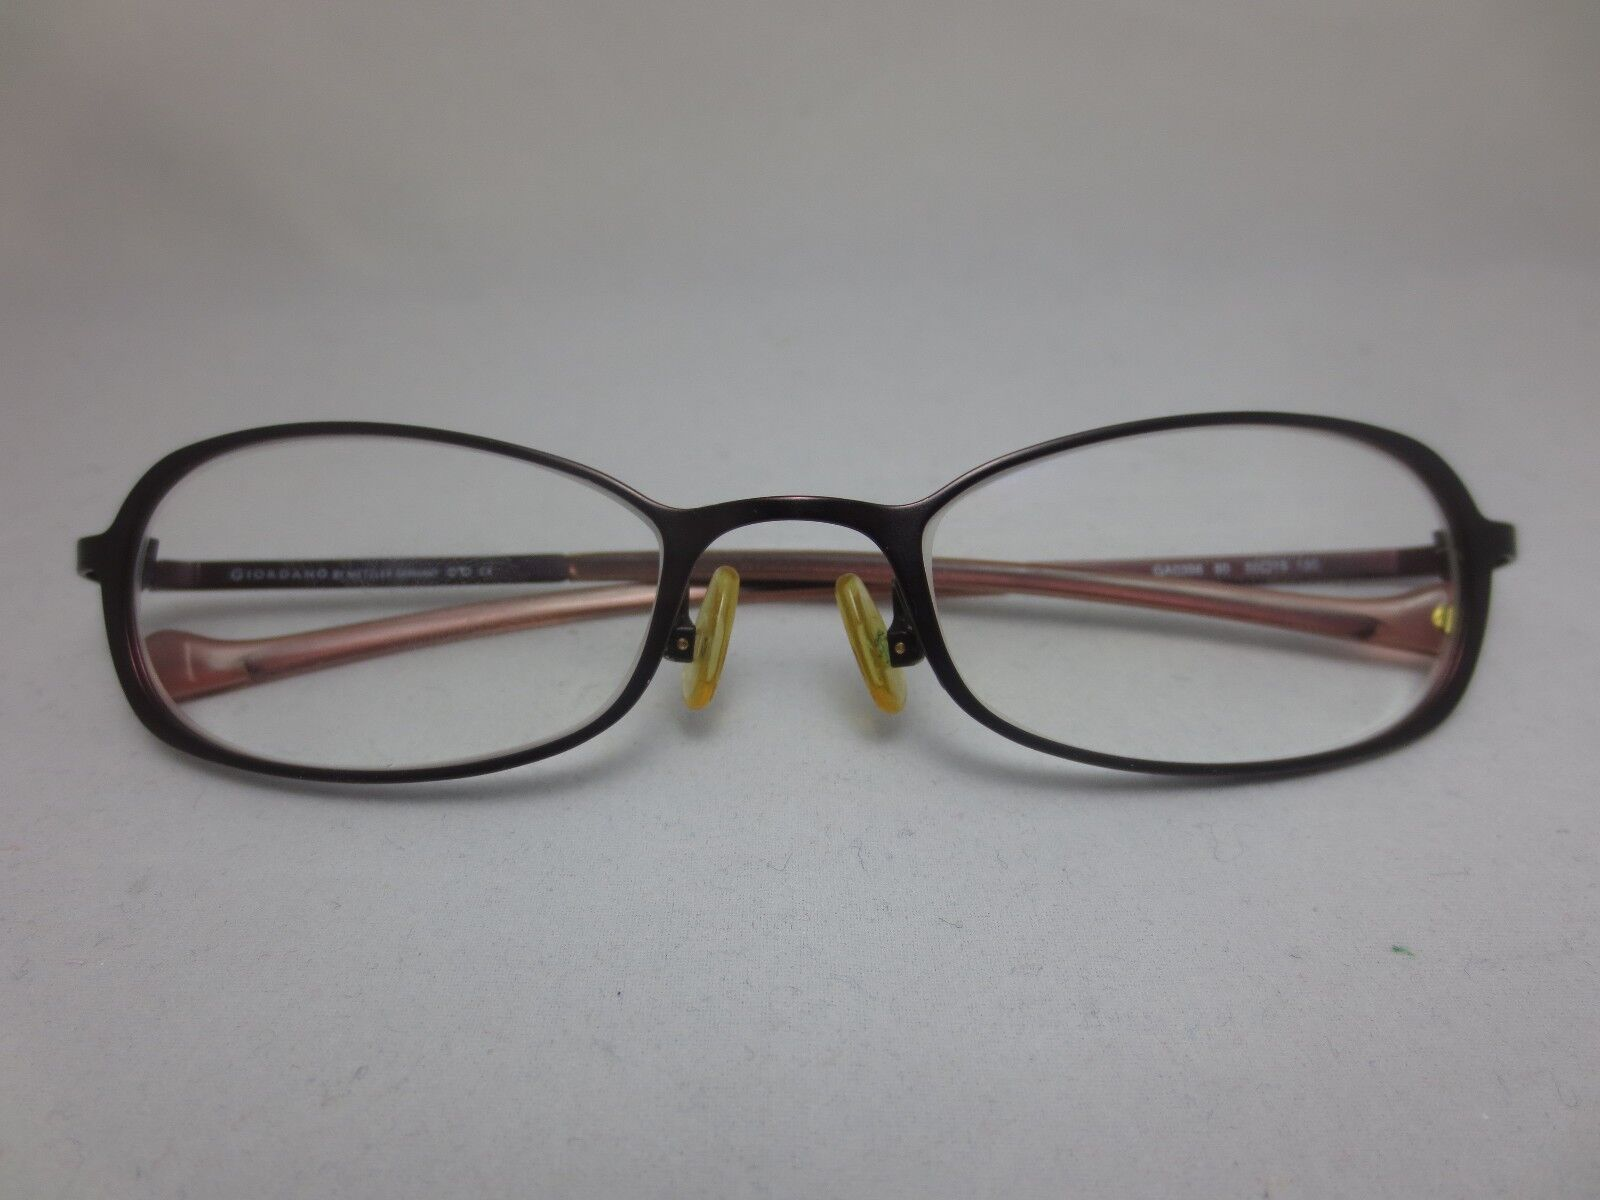 cebd6ba5579 Ободок для очков GIORDANO by METZLER Germany Frame Eyeglasses GA0396 80 -  323528890873 - (США)